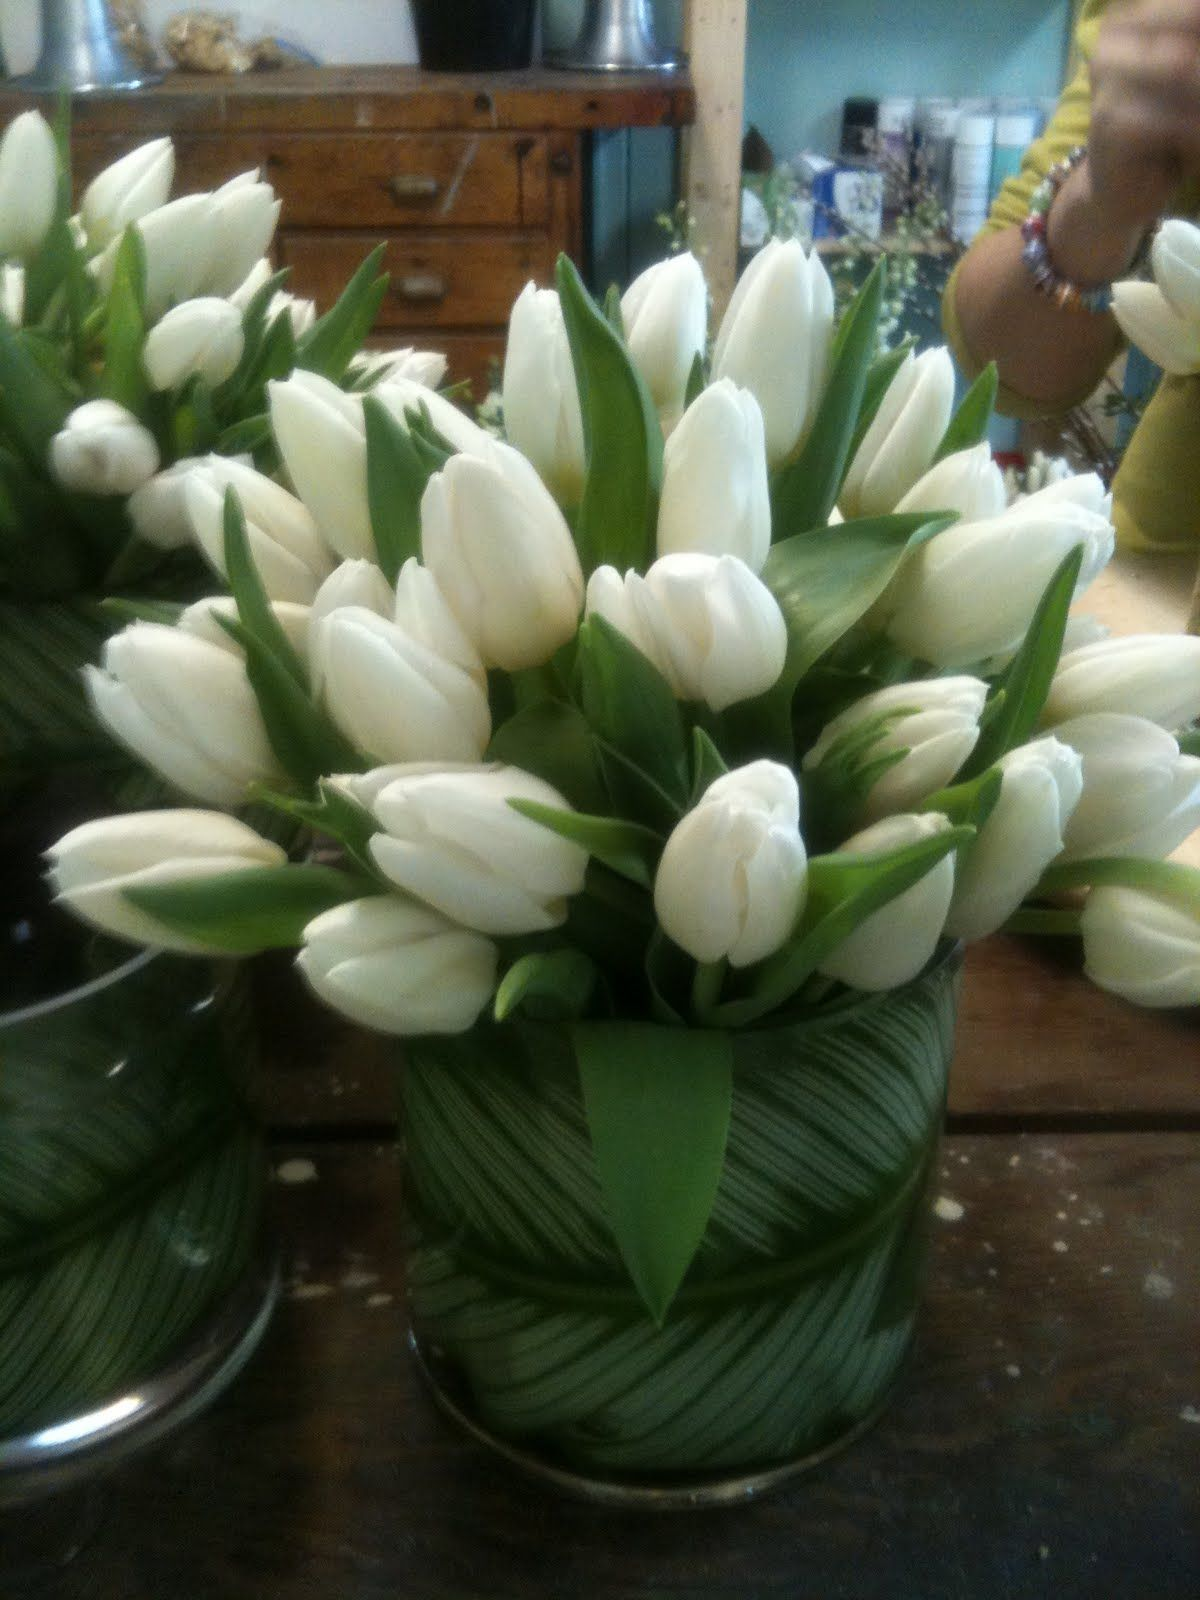 Minimal flower arrangement of white tulips with a patterned leaf wrap.